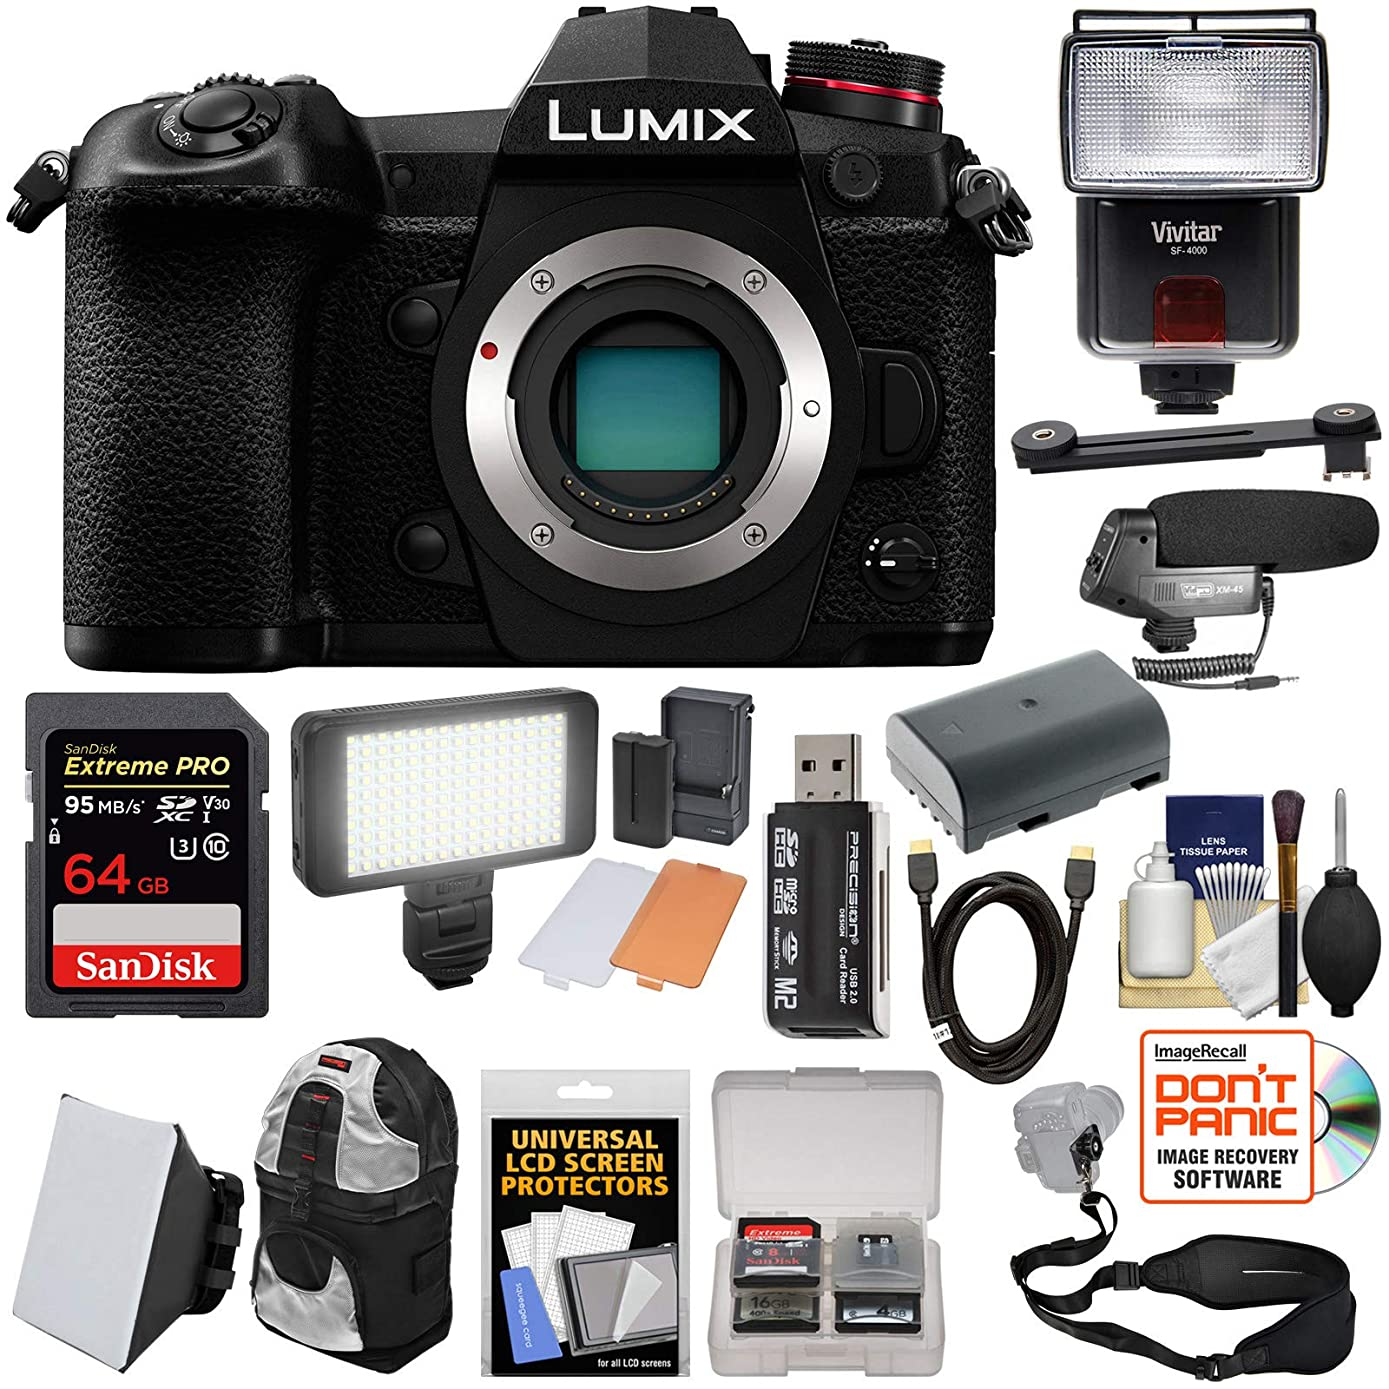 Panasonic Lumix DC-G9 4K Wi-Fi Digital Camera Body with 64GB Card + Battery + Backpack + Flash + Soft Box + Video Light + Mic Kit umc8517260737